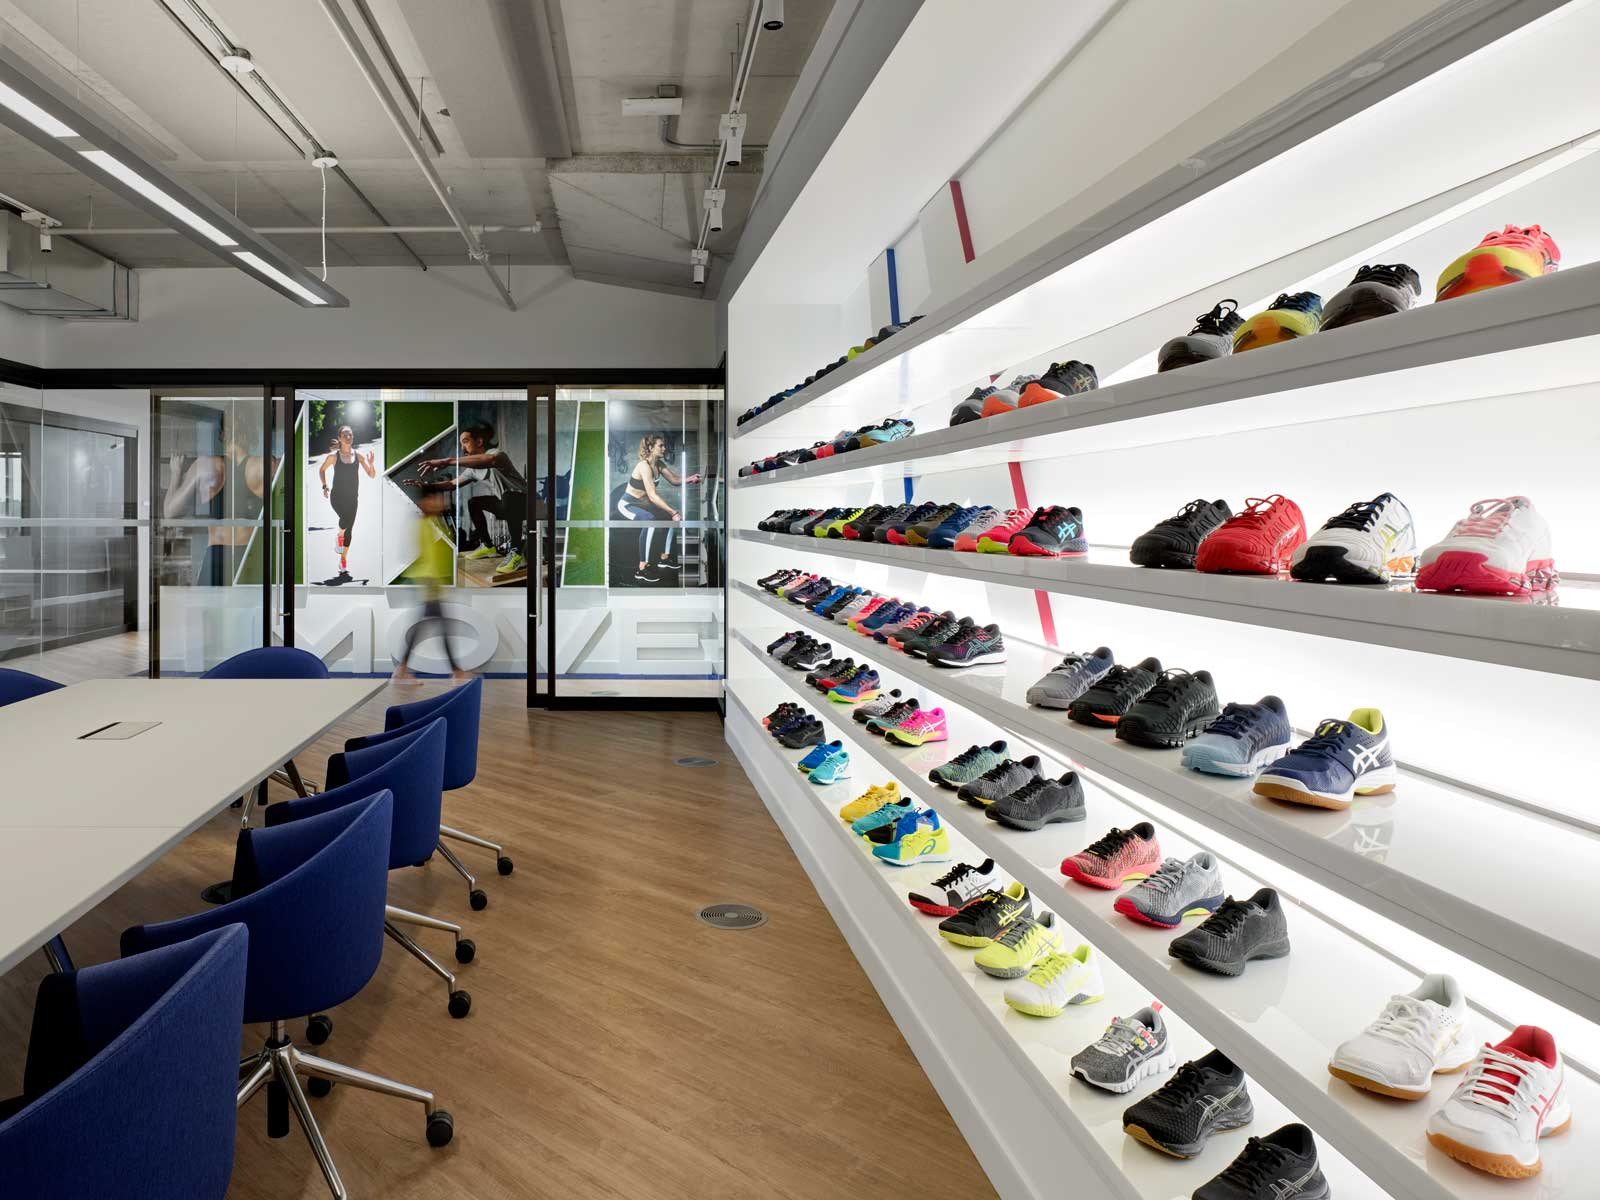 Asics brand steps forward with their first Canadian office